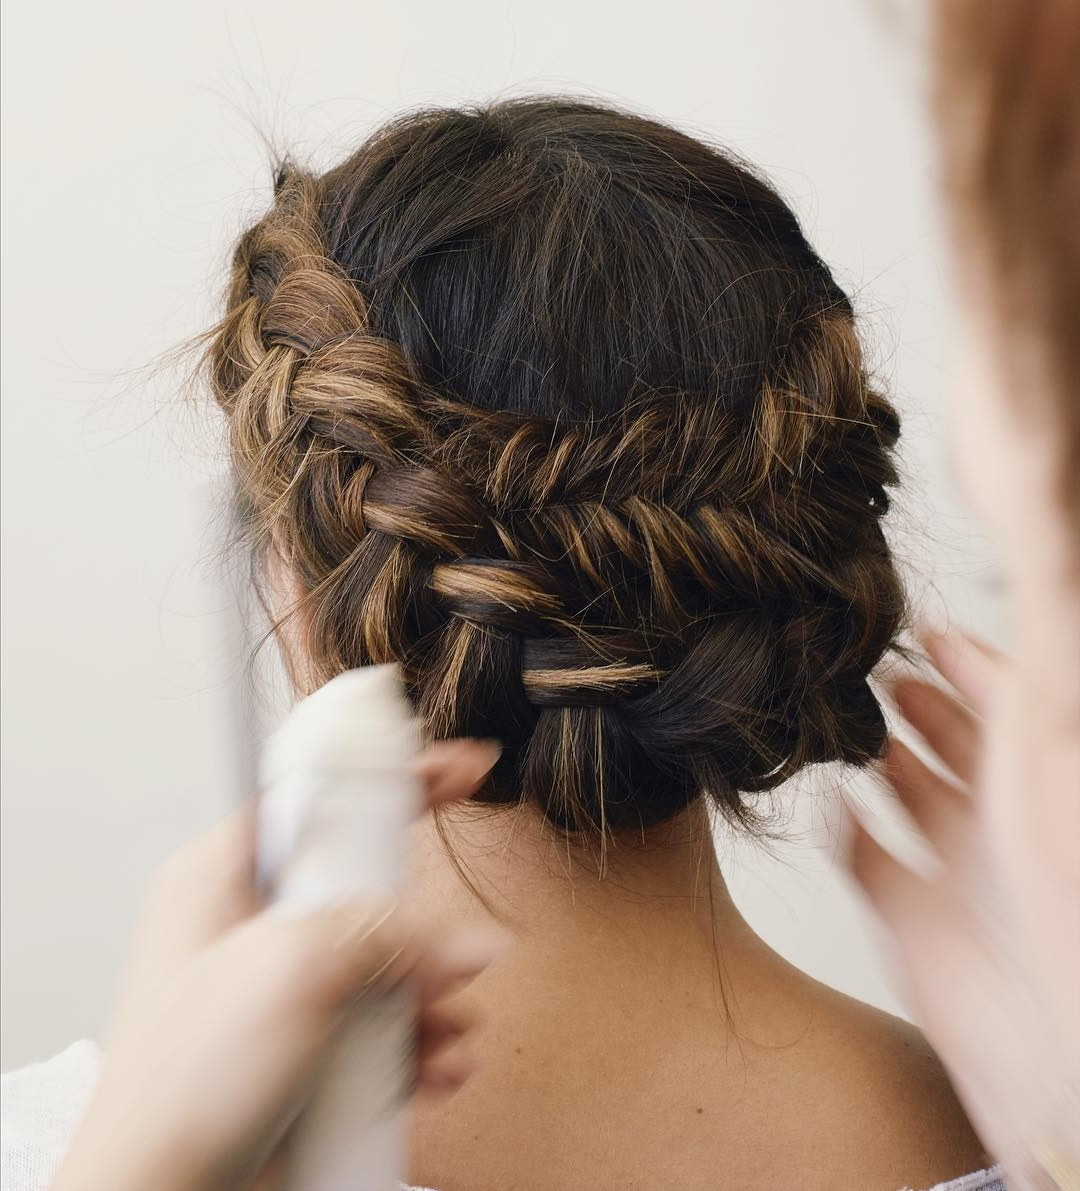 Latest Classic Prom Updos With Thick Accent Braid Throughout 61 Braided Wedding Hairstyles (View 10 of 20)